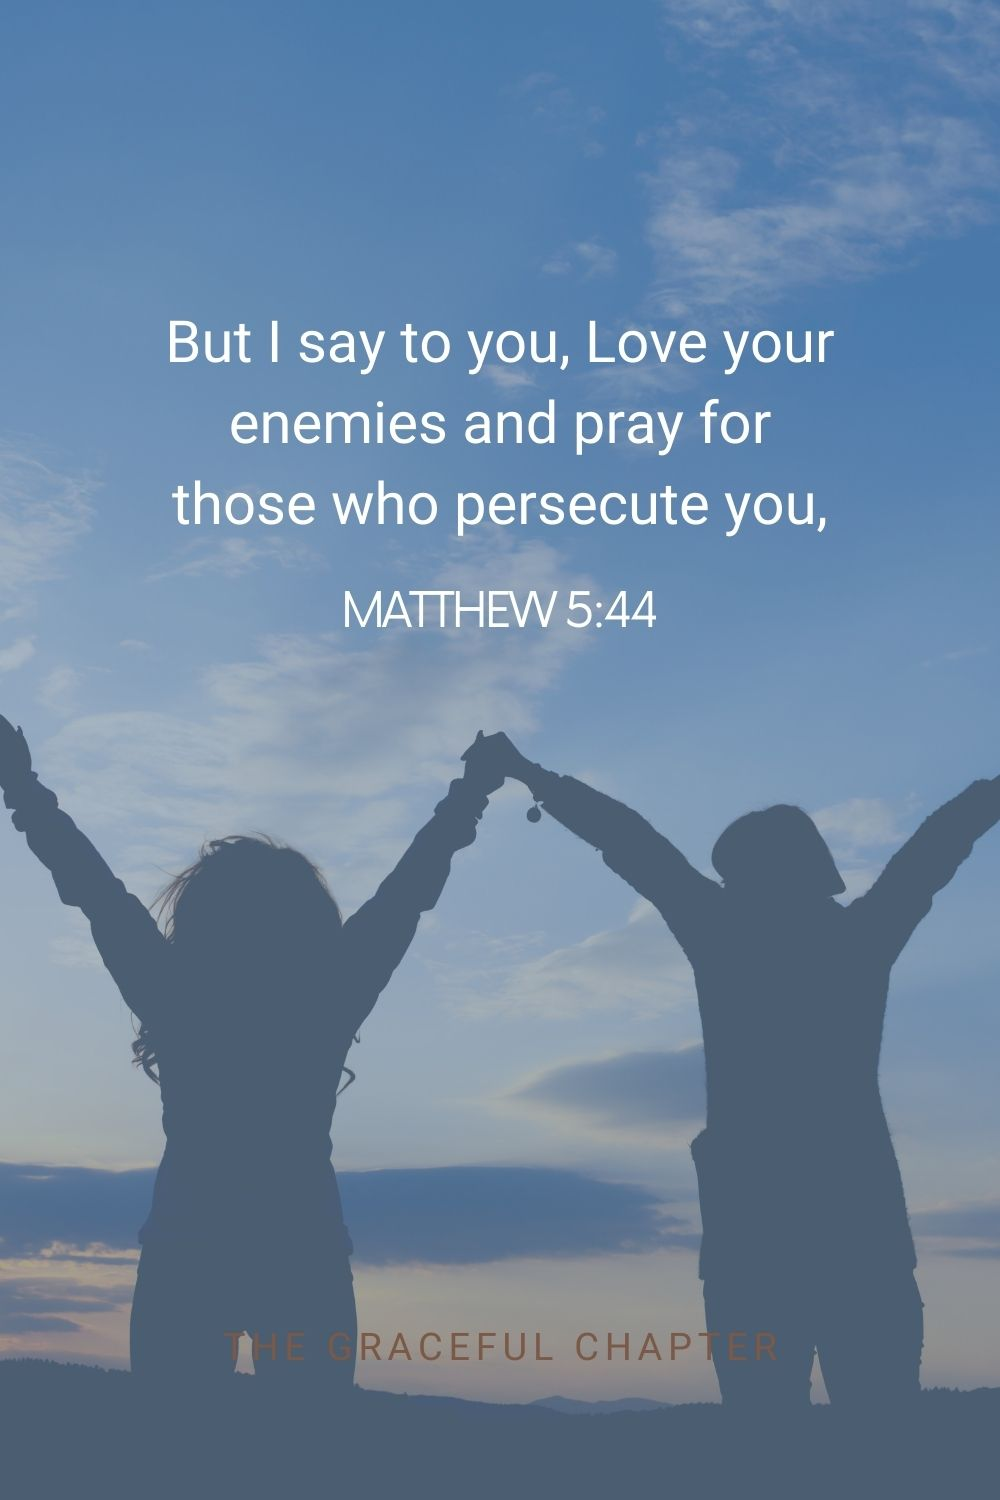 But I say to you, Love your enemies and pray for those who persecute you, Matthew 5:44